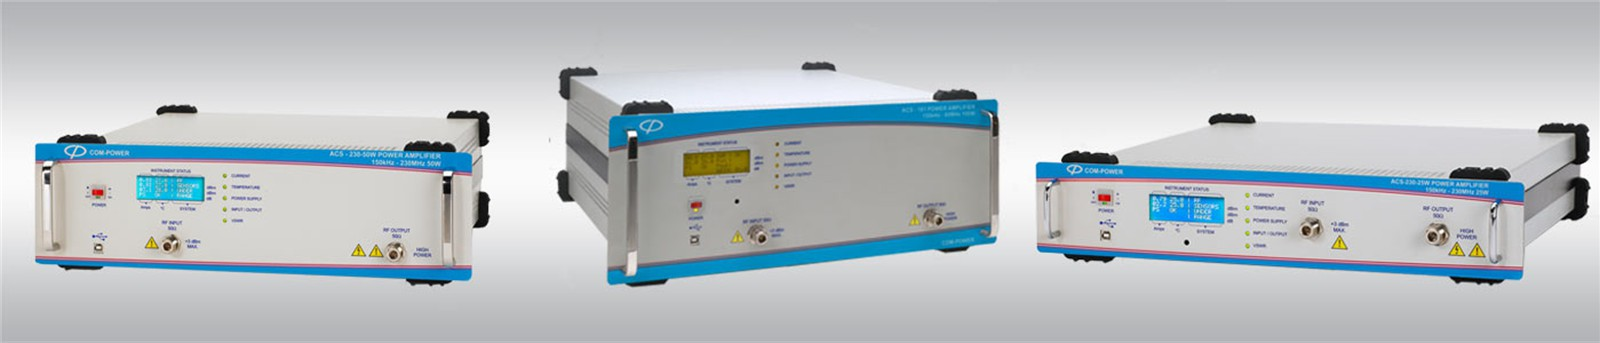 Power Amplifiers For 150 kHz to 230 MHz Frequency Ranges